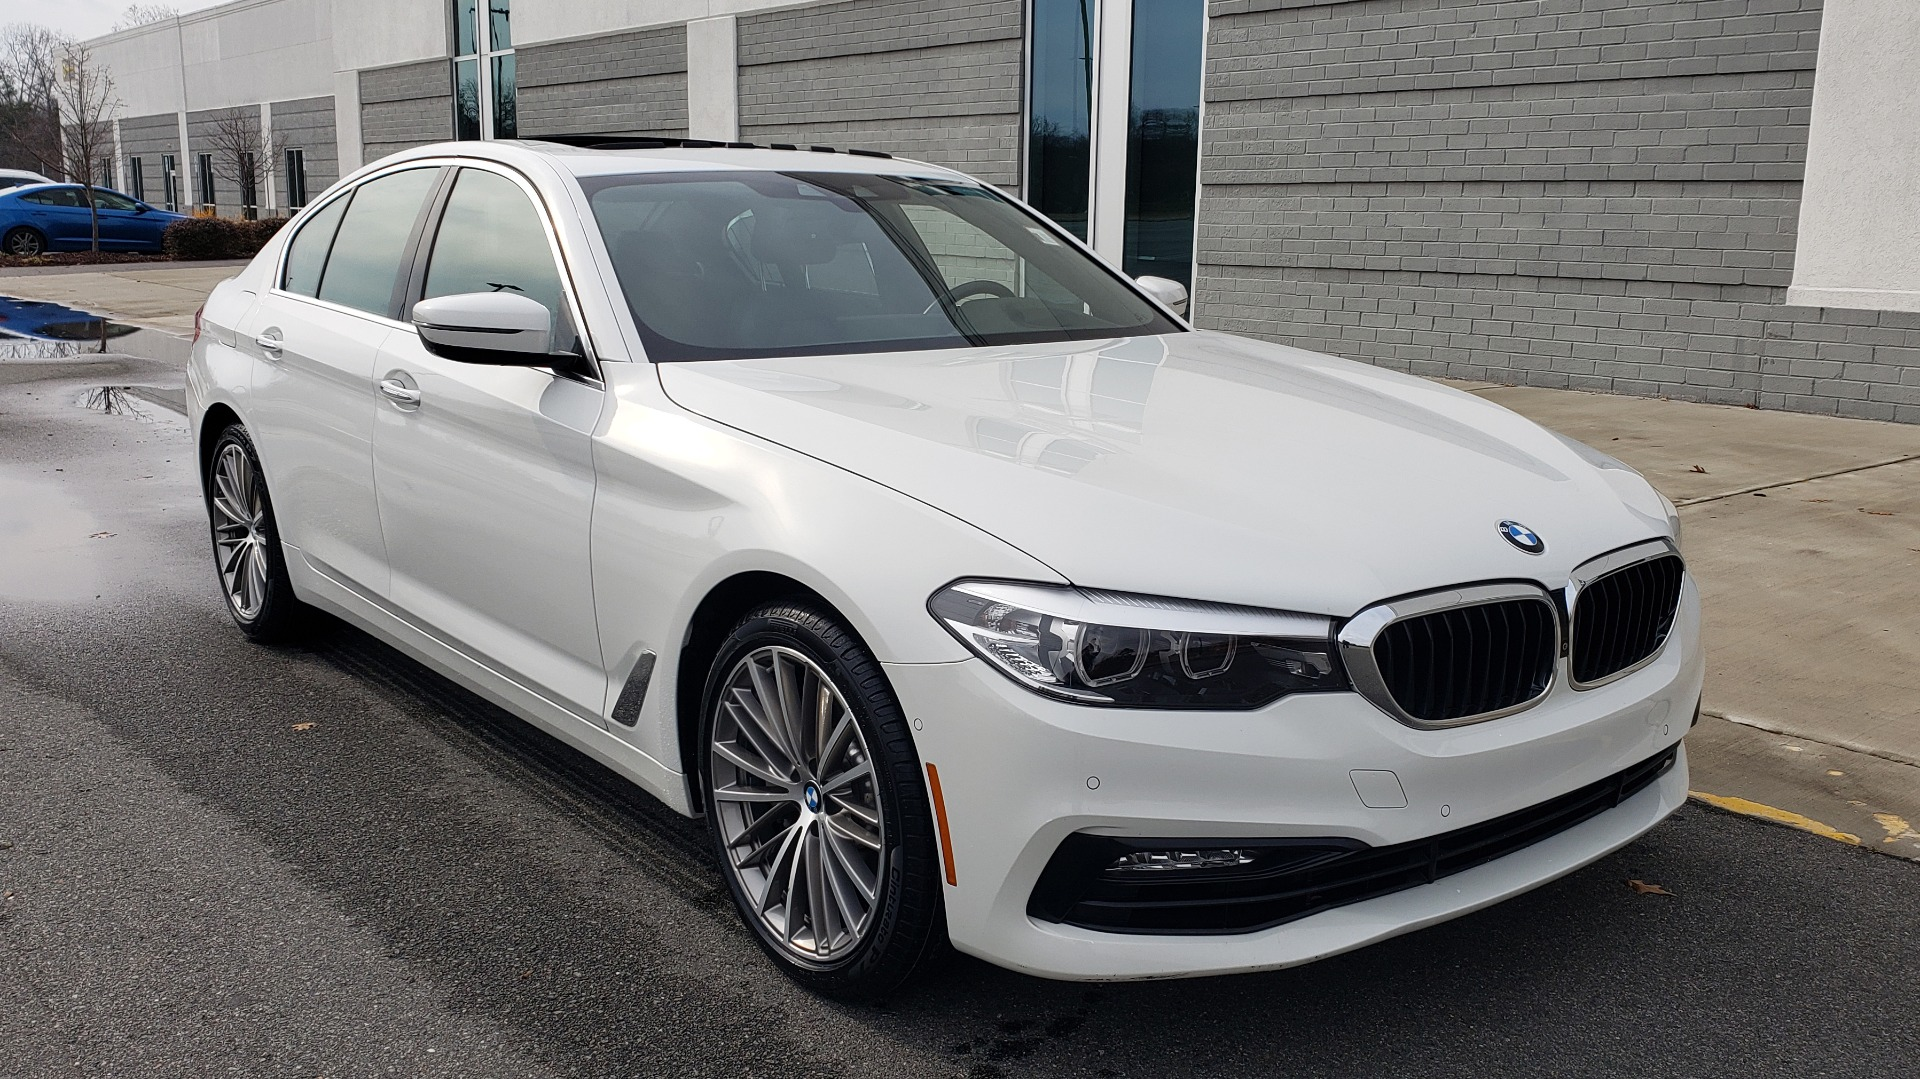 Used 2017 BMW 5 SERIES 530I PREMIUM / DRVR ASST PLUS / NAV / HUD / SUNROOF / REARVIEW for sale Sold at Formula Imports in Charlotte NC 28227 2